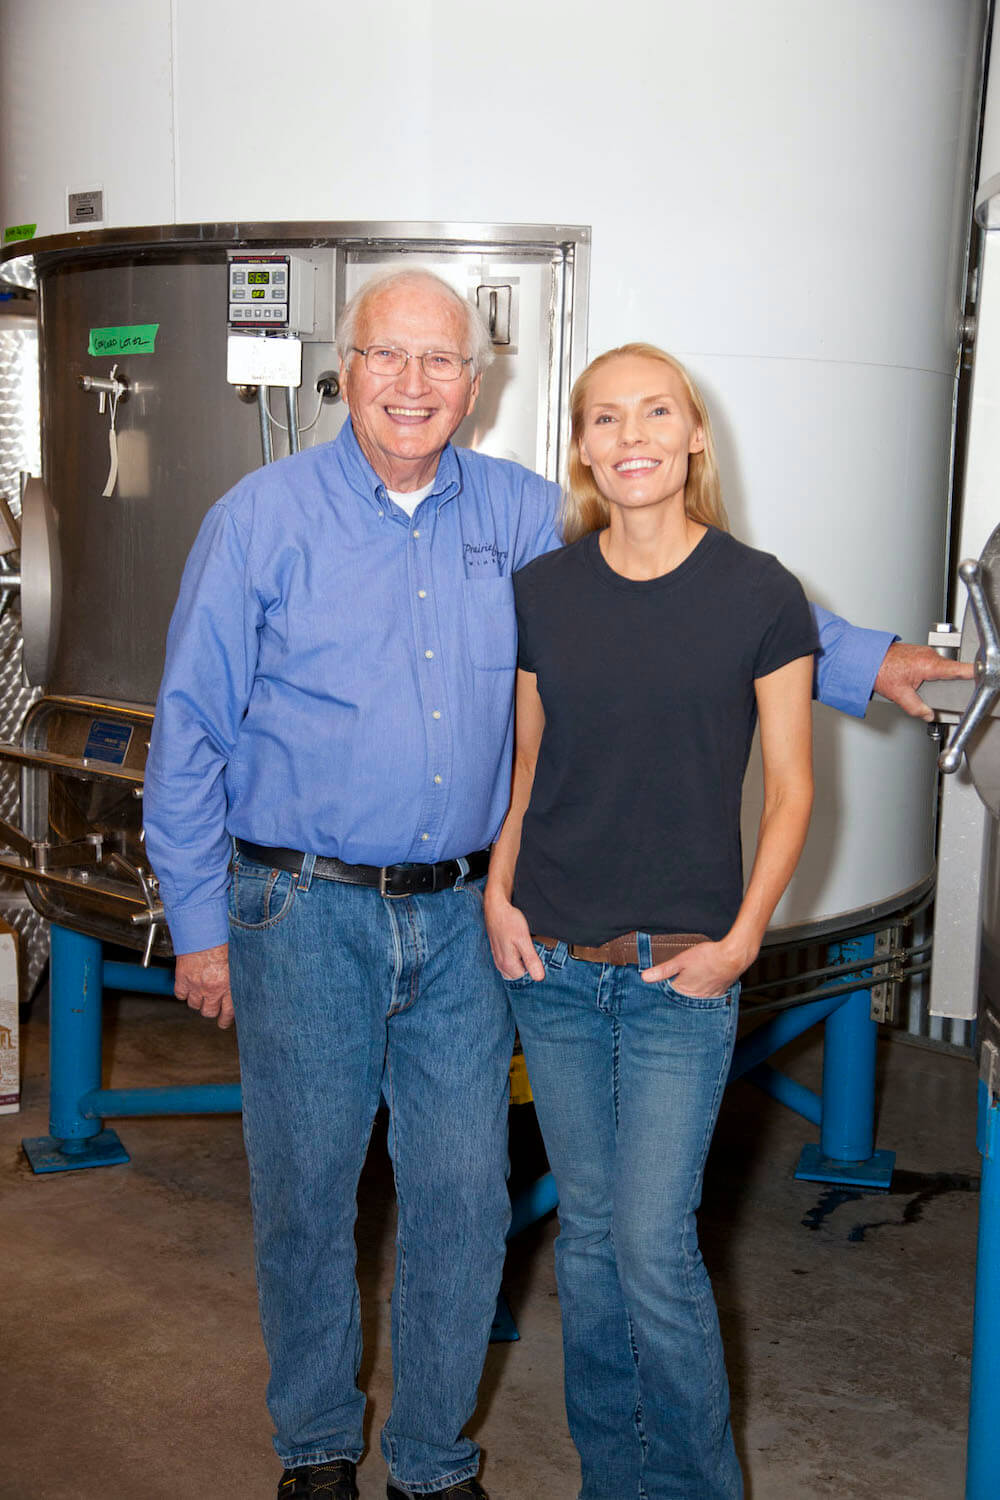 Ralph and winemaker Sandi in the production area at Prairie Berry Winery